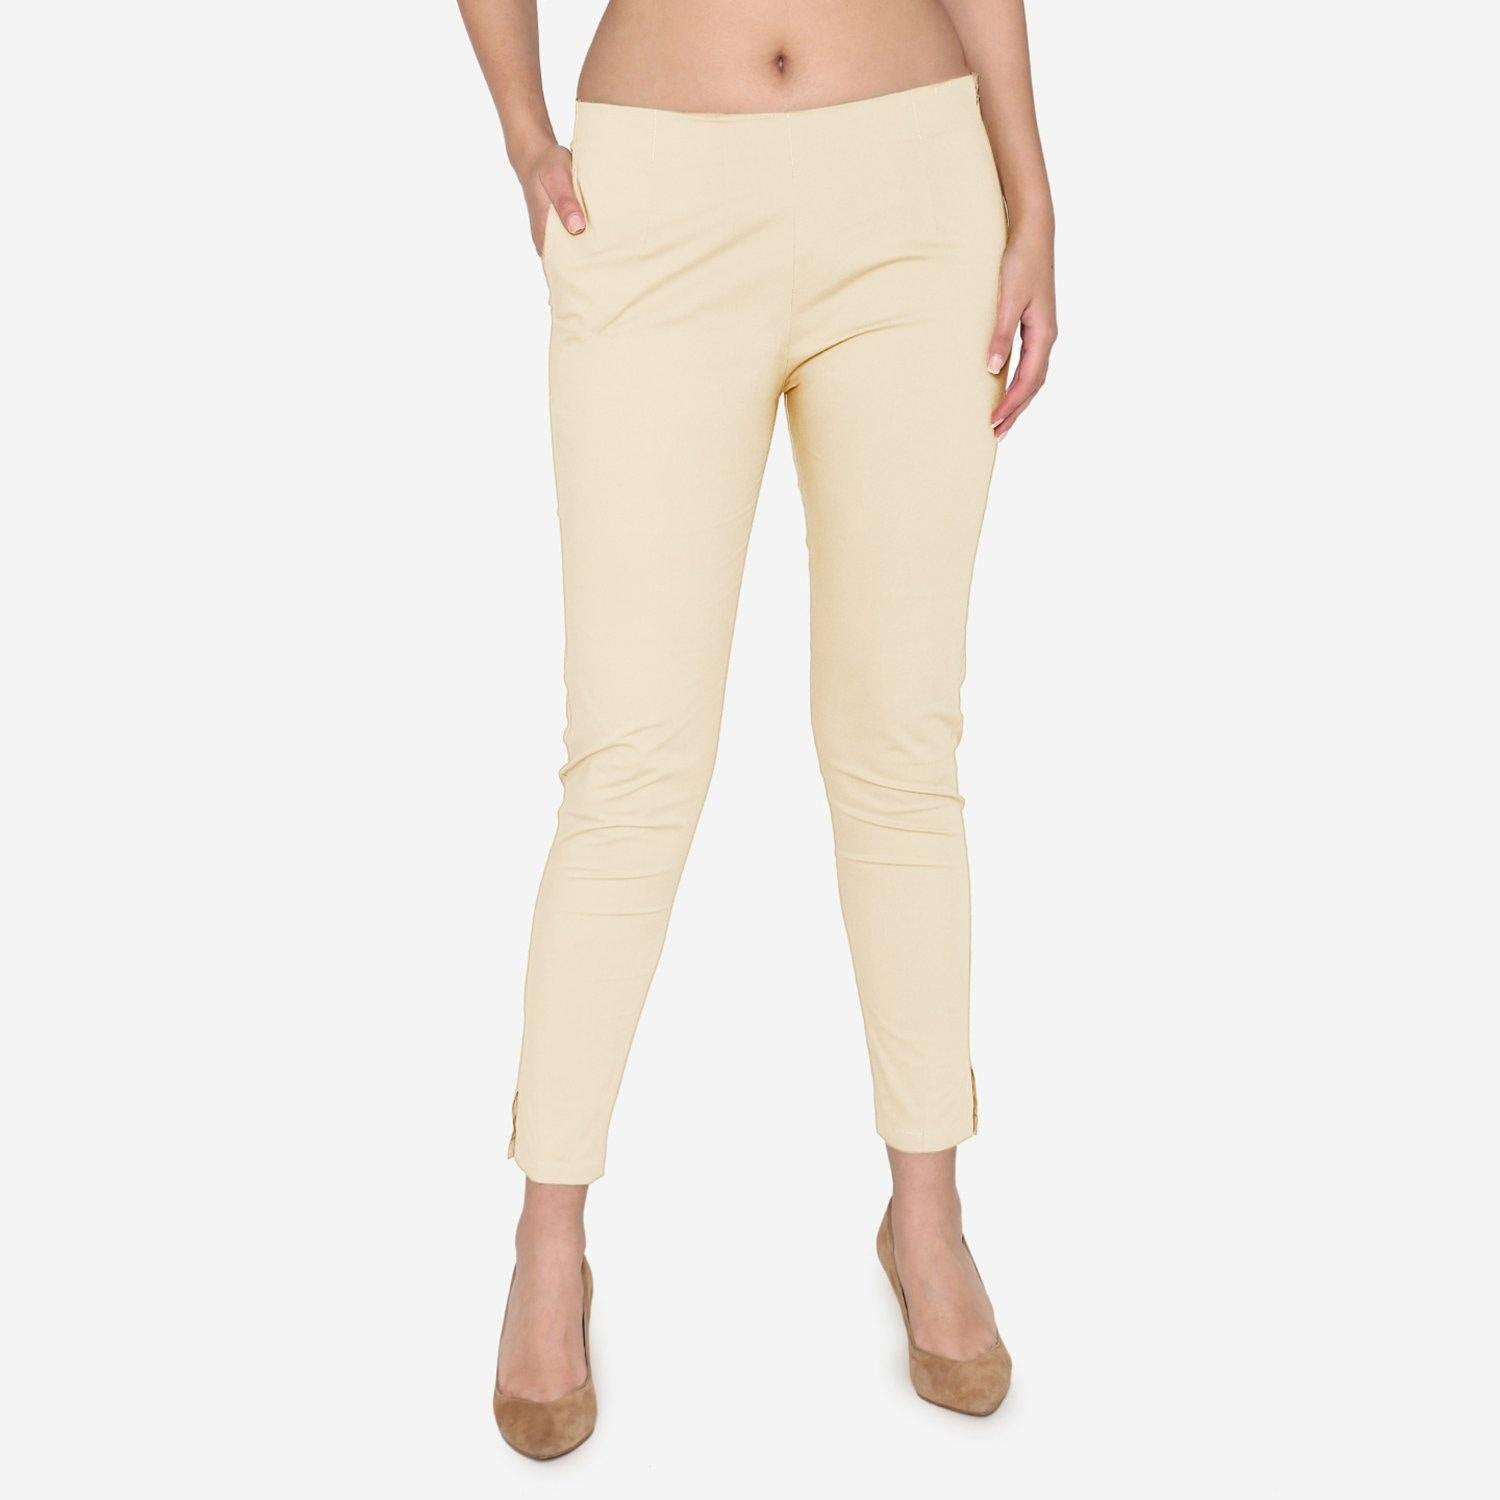 Vami Women's Cotton Formal Trousers